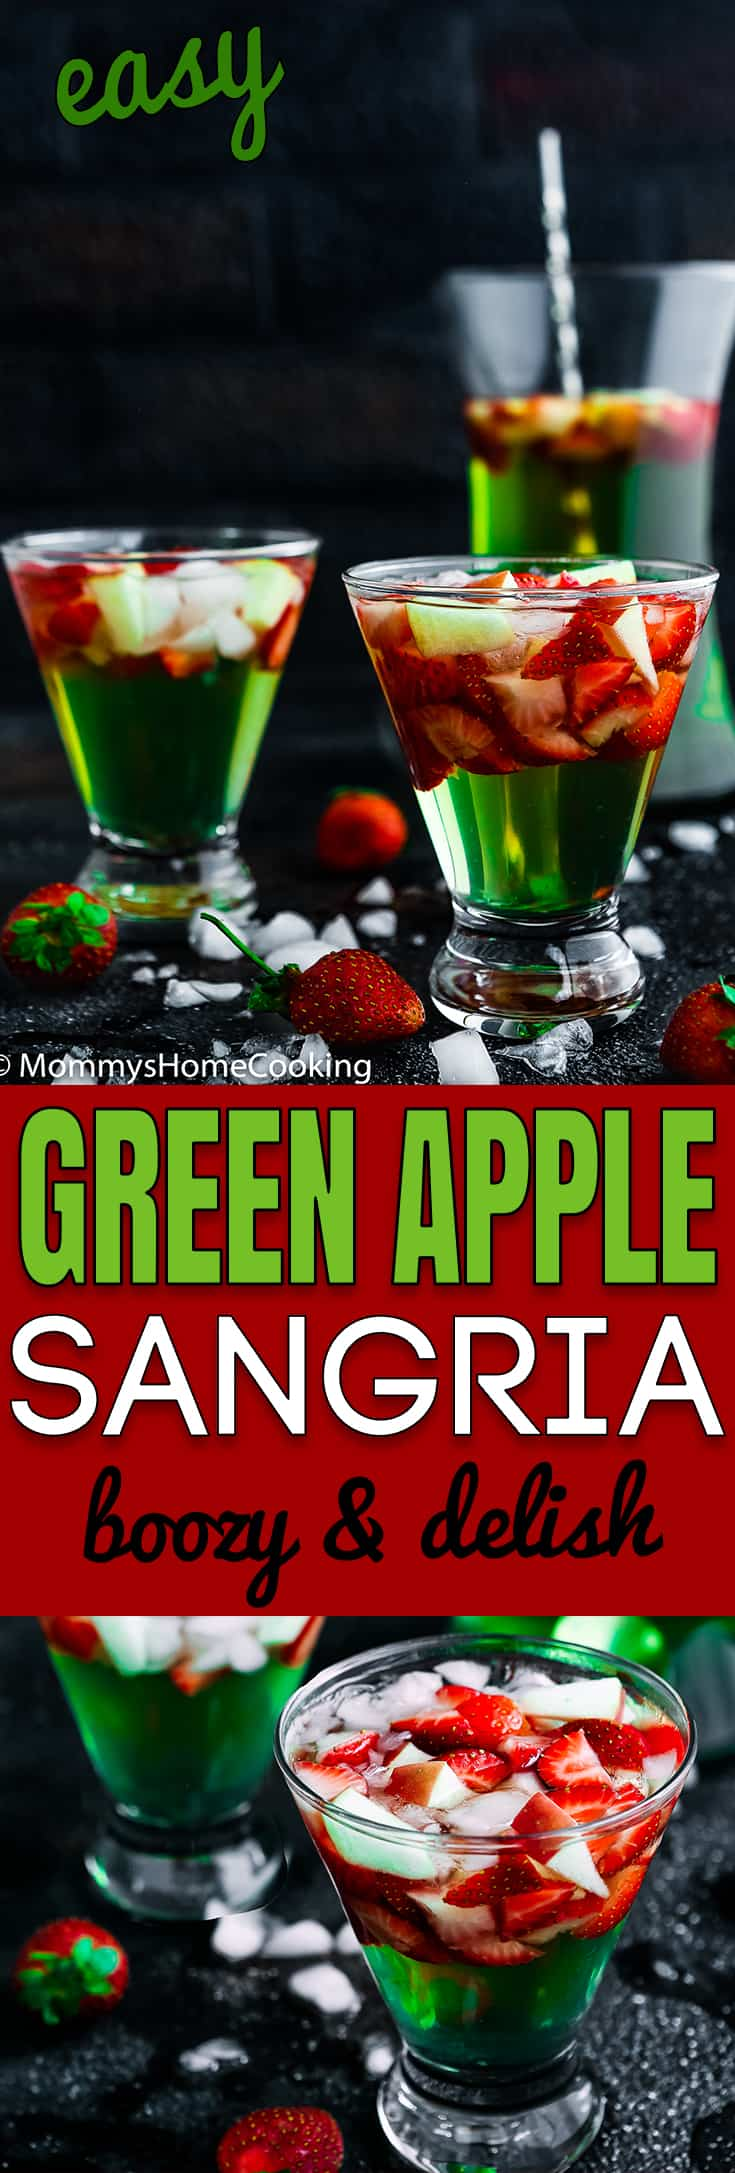 This Green Apple Sangria is boozy, light, crisp and chock-full of yummy fruit. It's the perfect make-ahead cocktail for parties and gatherings. http://mommyshomecooking.com